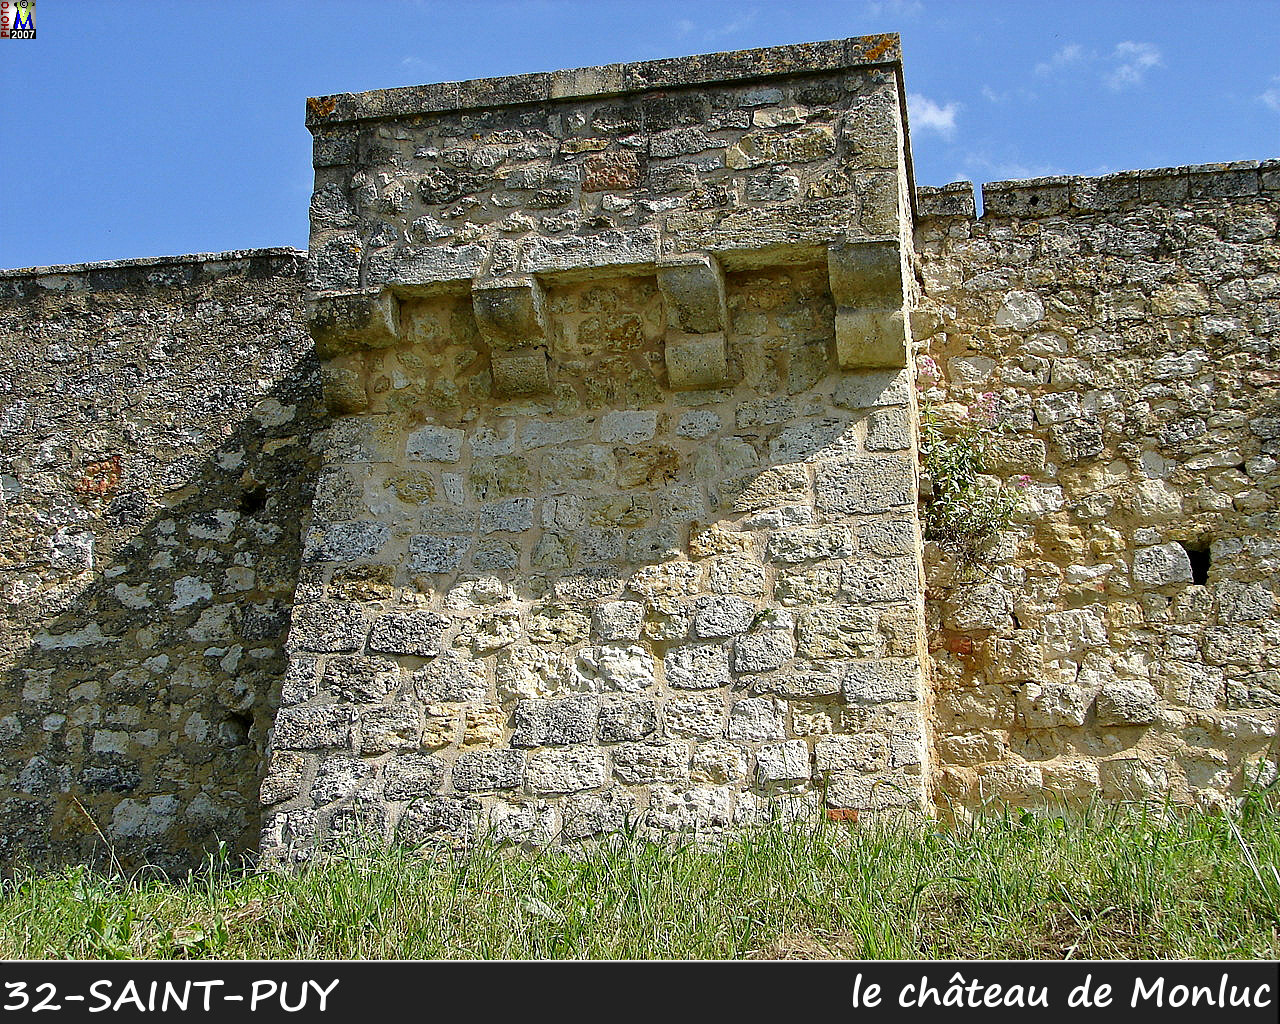 32St-PUY_chateau_142.jpg